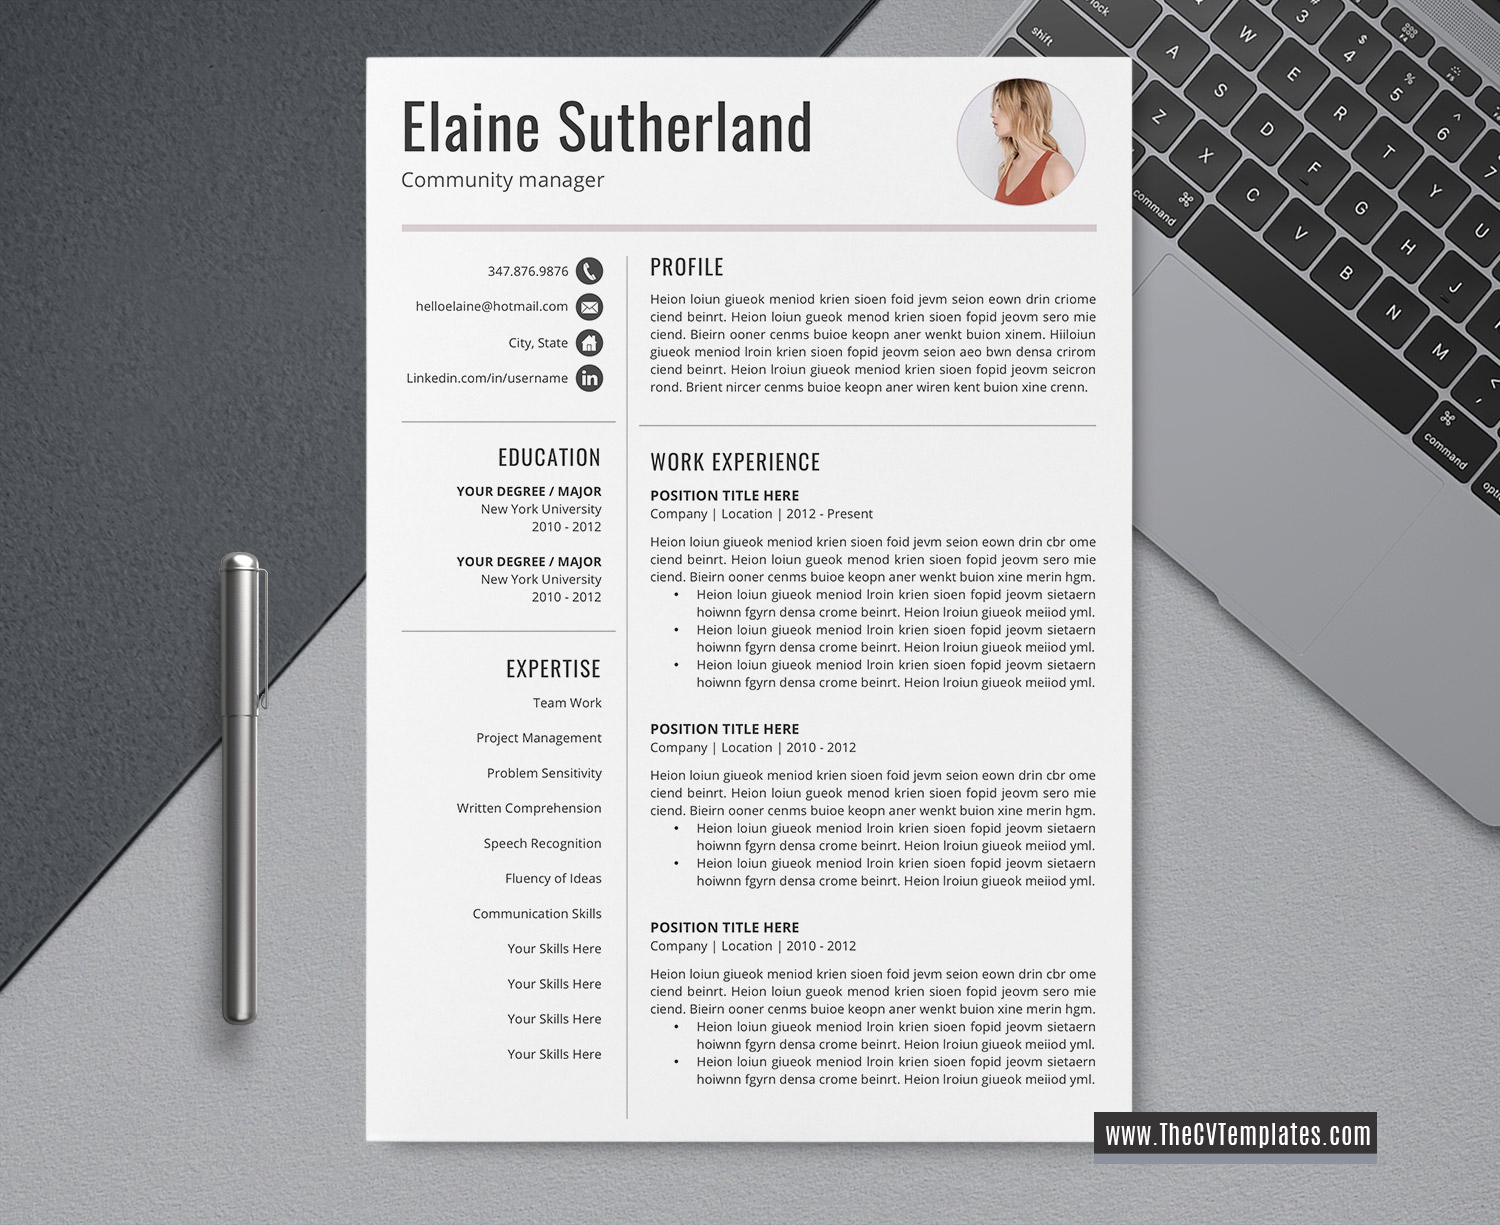 2020 Editable Cv Template For Job Application Cv Format